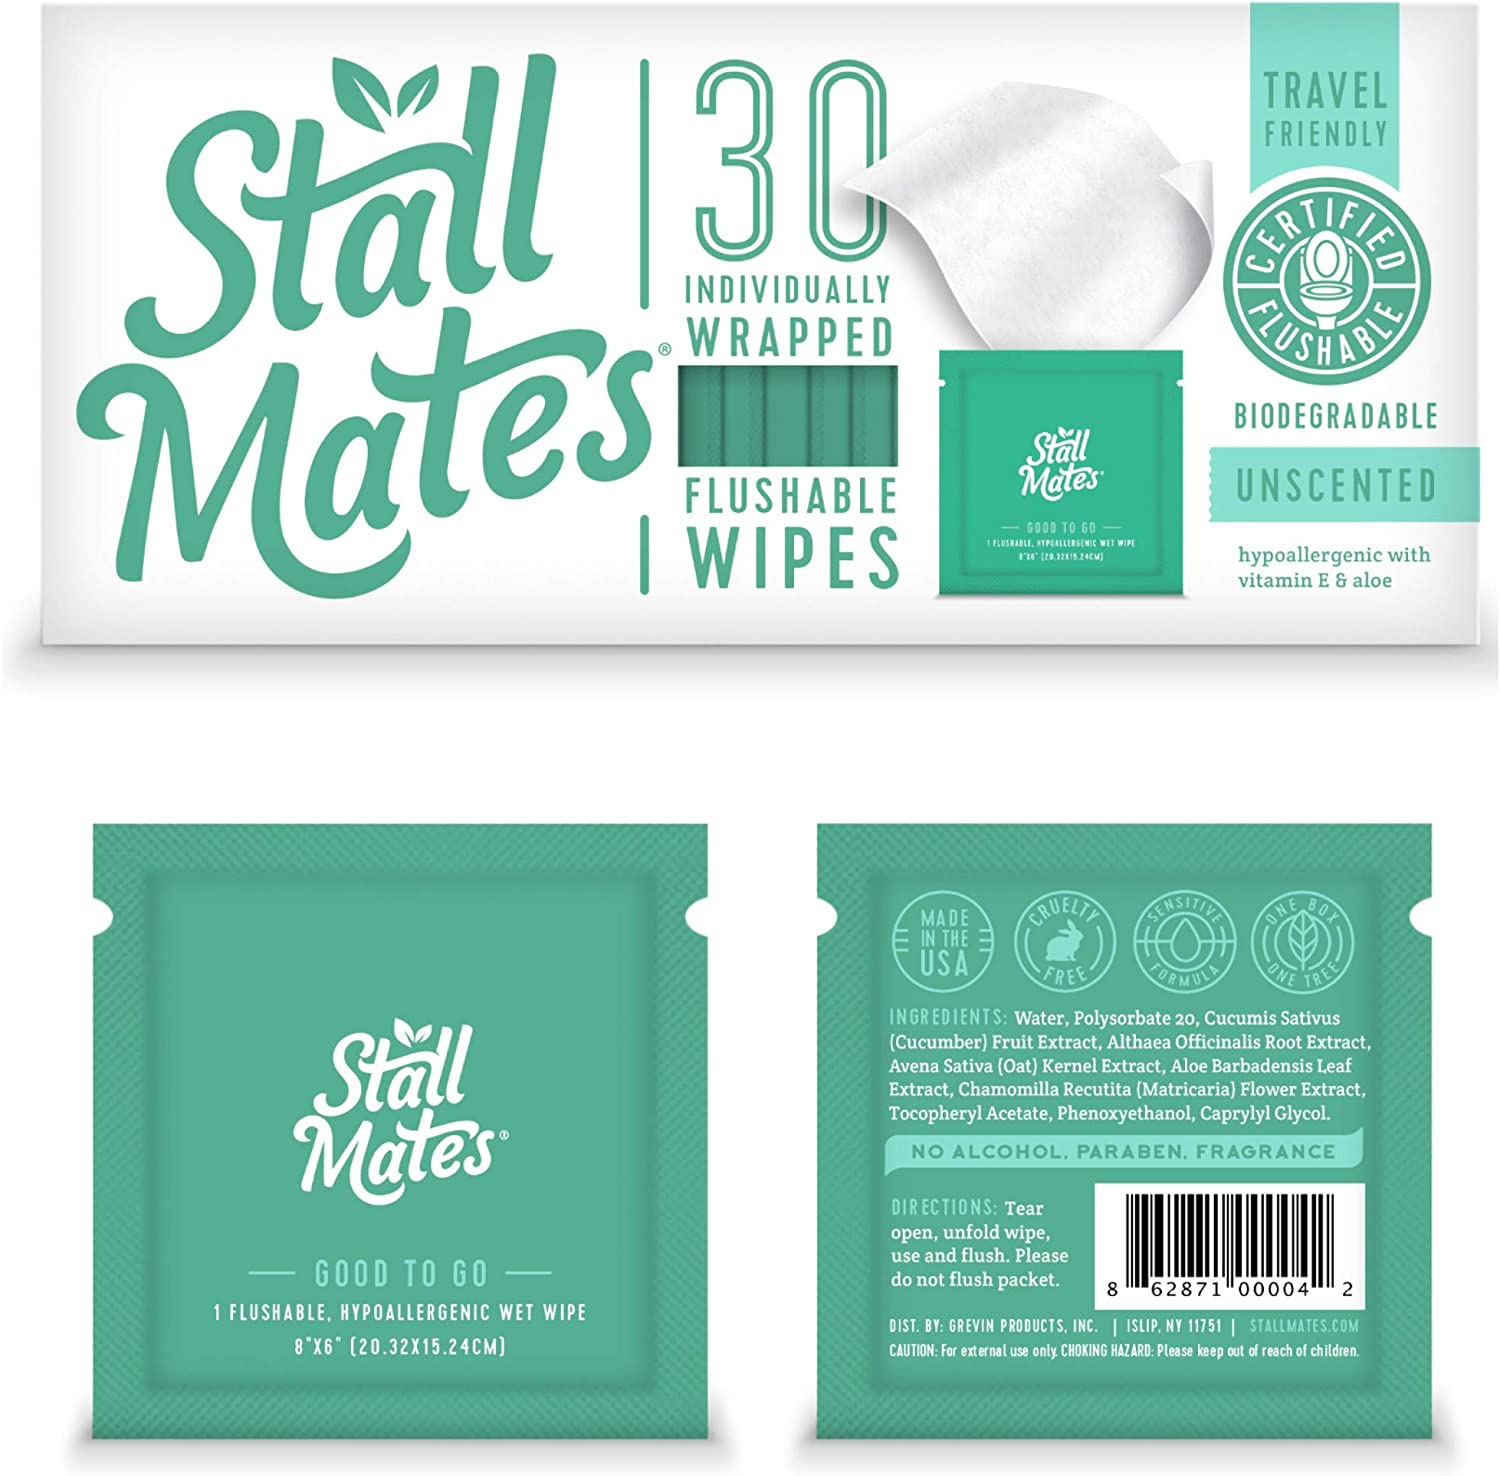 Stall Mates: Flushable, individually wrapped wipes for travel